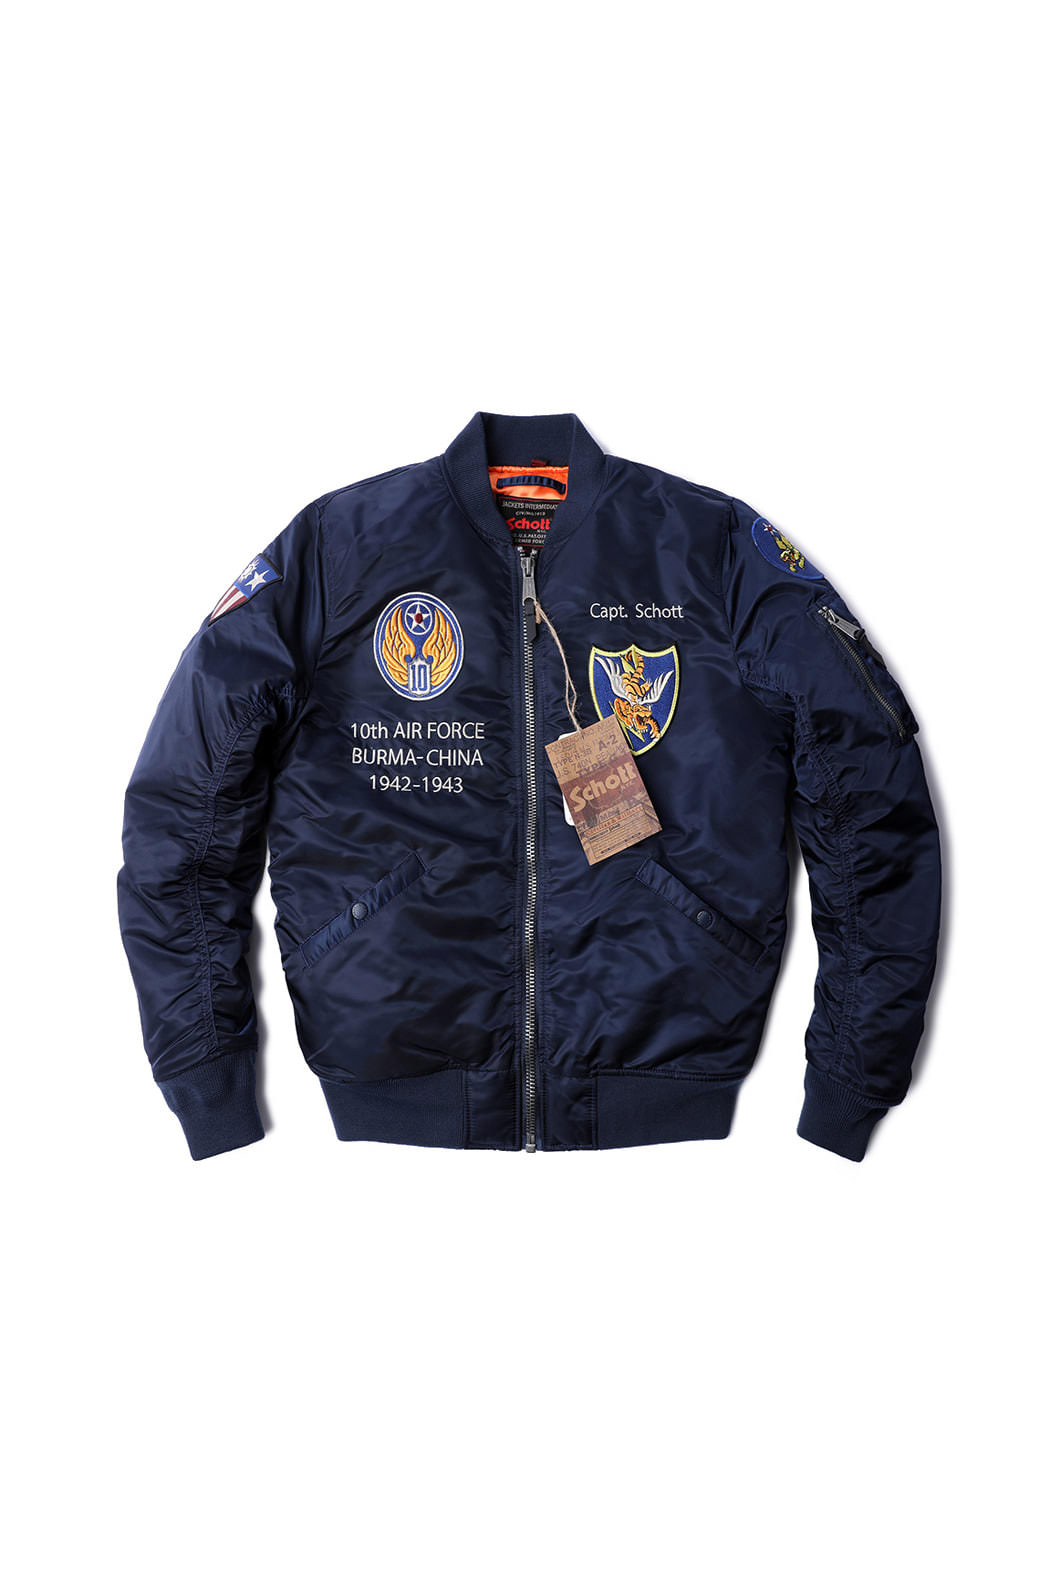 SCHOTT N.Y.C FLYING TENTH Padding MA-1 JACKET[America-Original]-2019FW 마지막수량입고!!